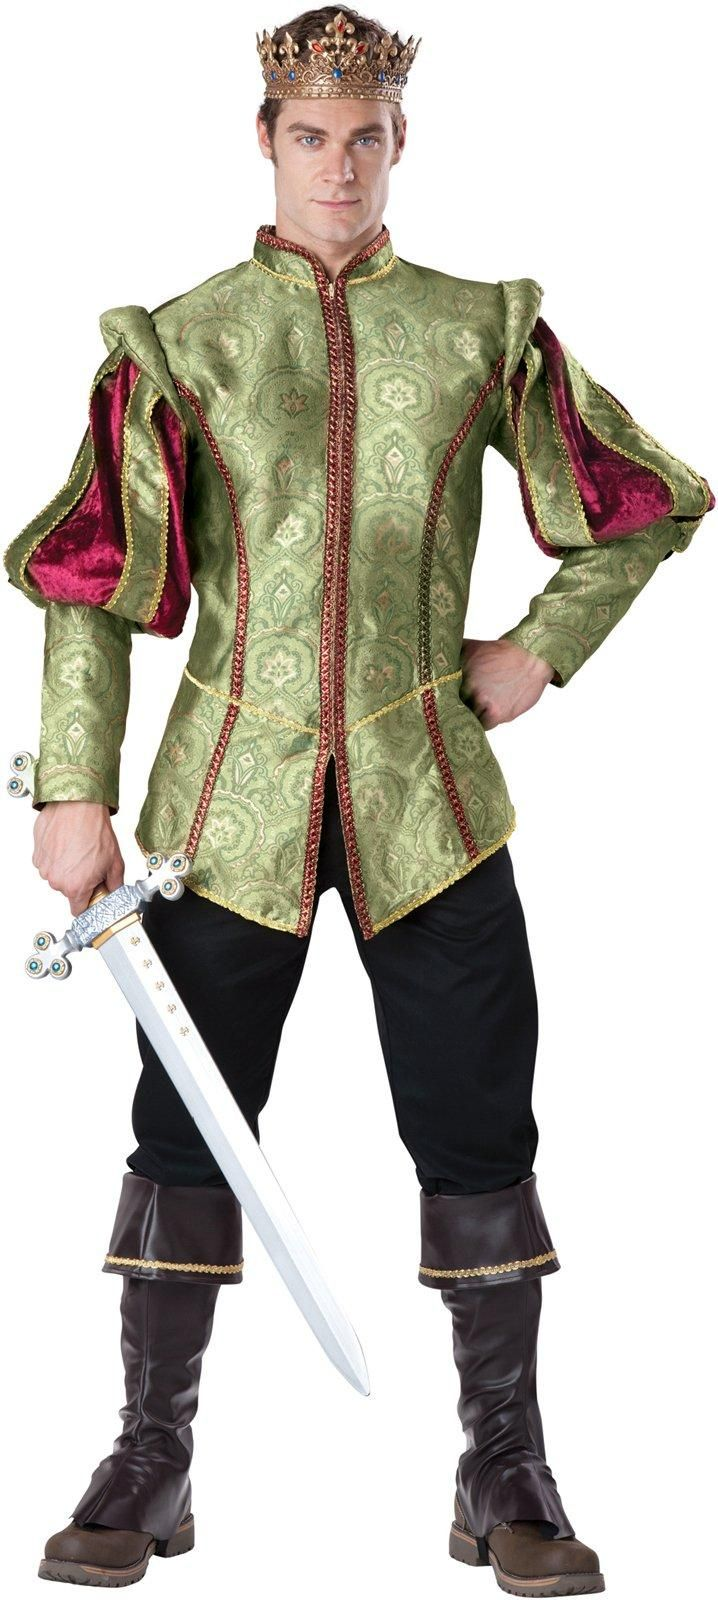 Best 25+ Prince costume ideas on Pinterest | Doublet, Renaissance ...